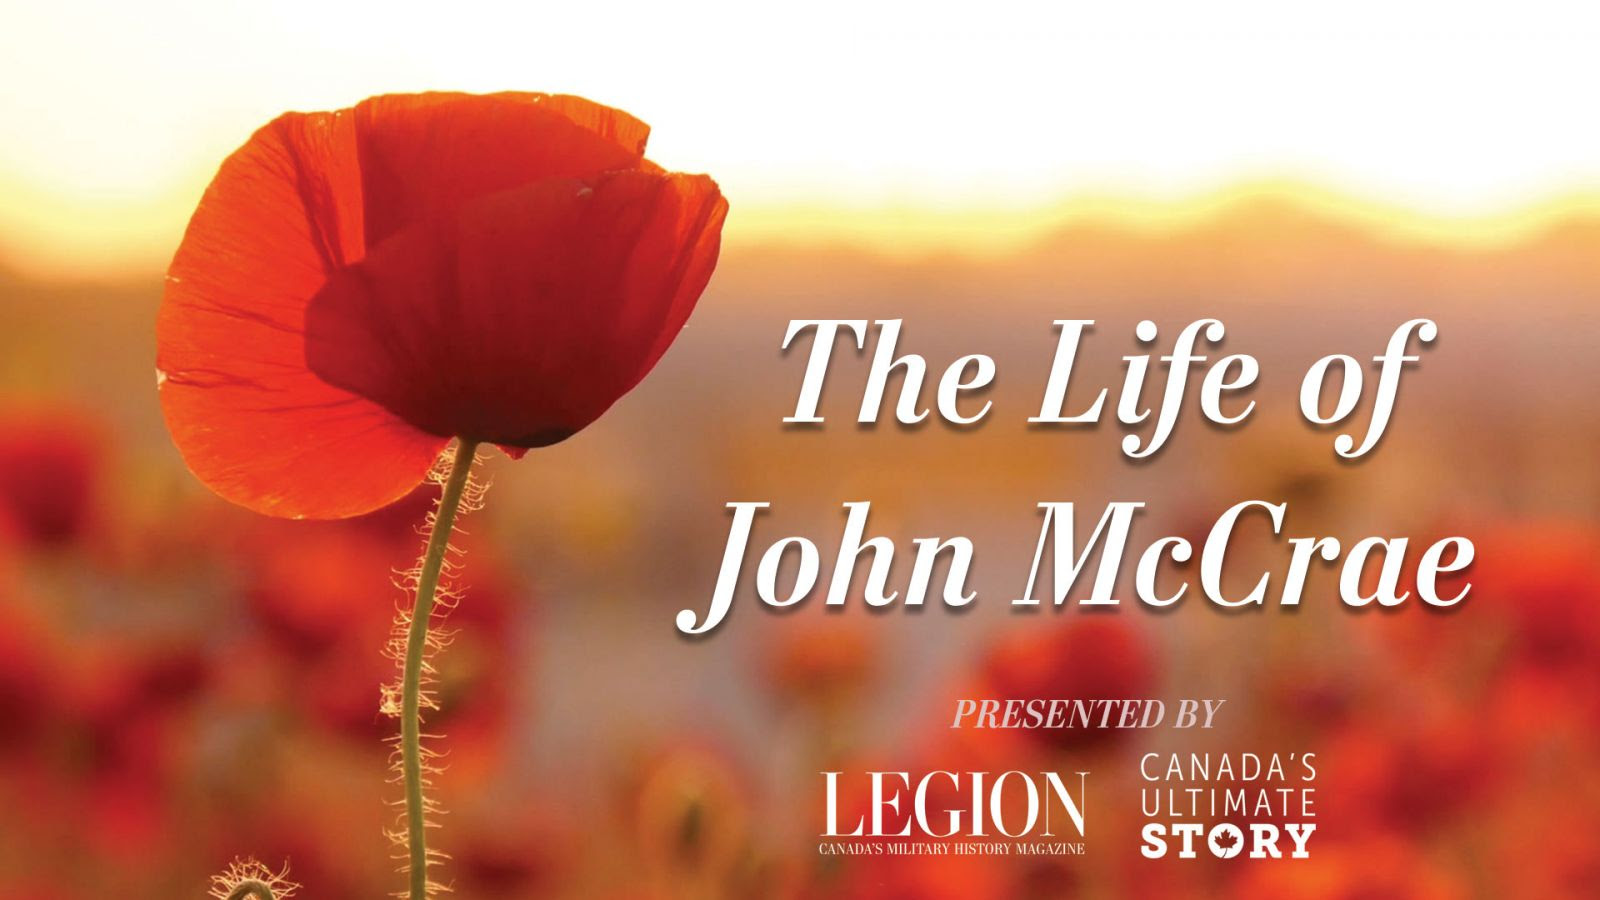 The Life of John McCrae